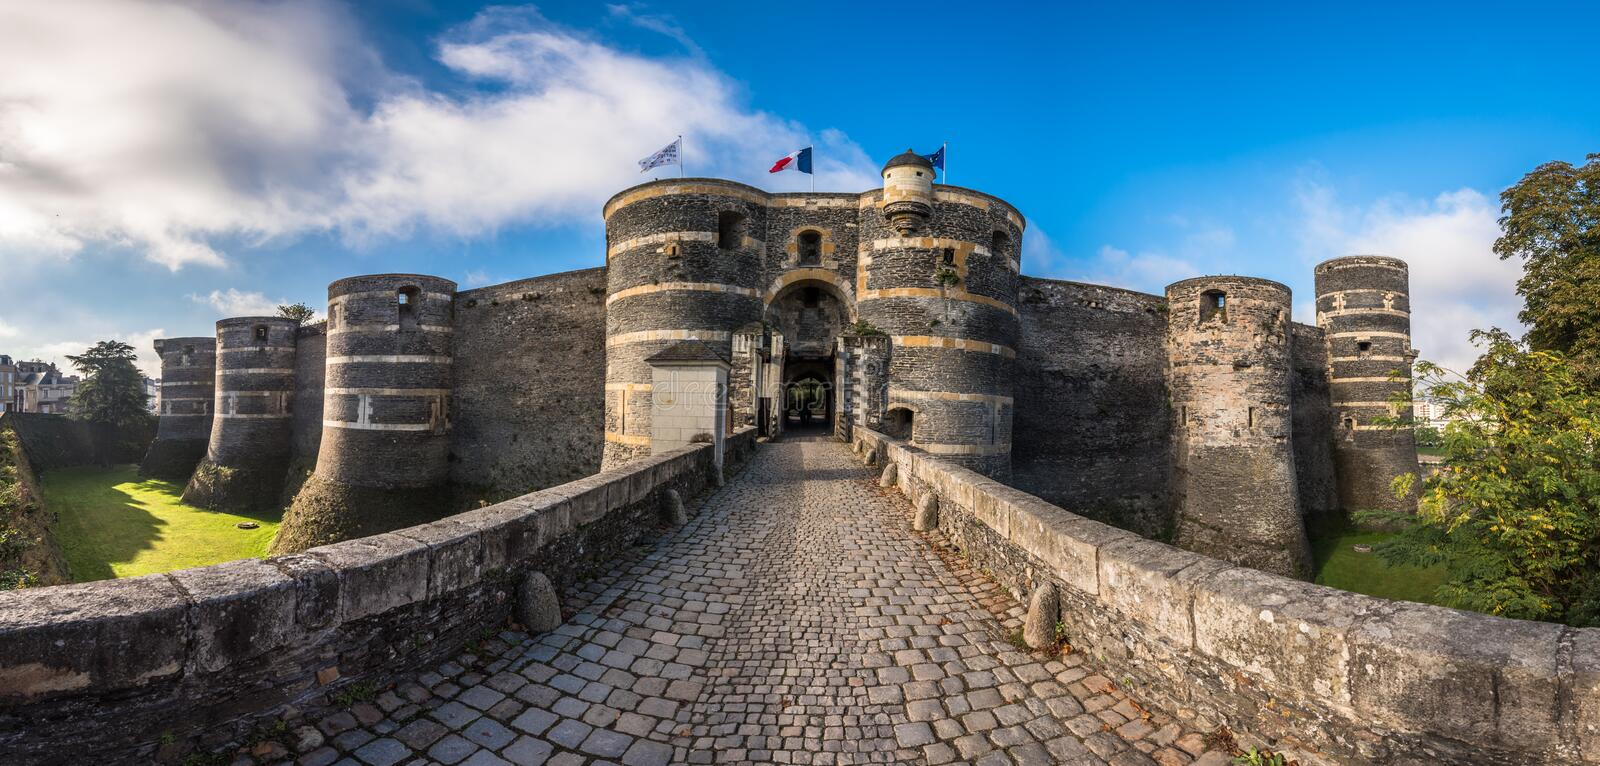 Entrance gate of the Angers castle, France royalty free stock image